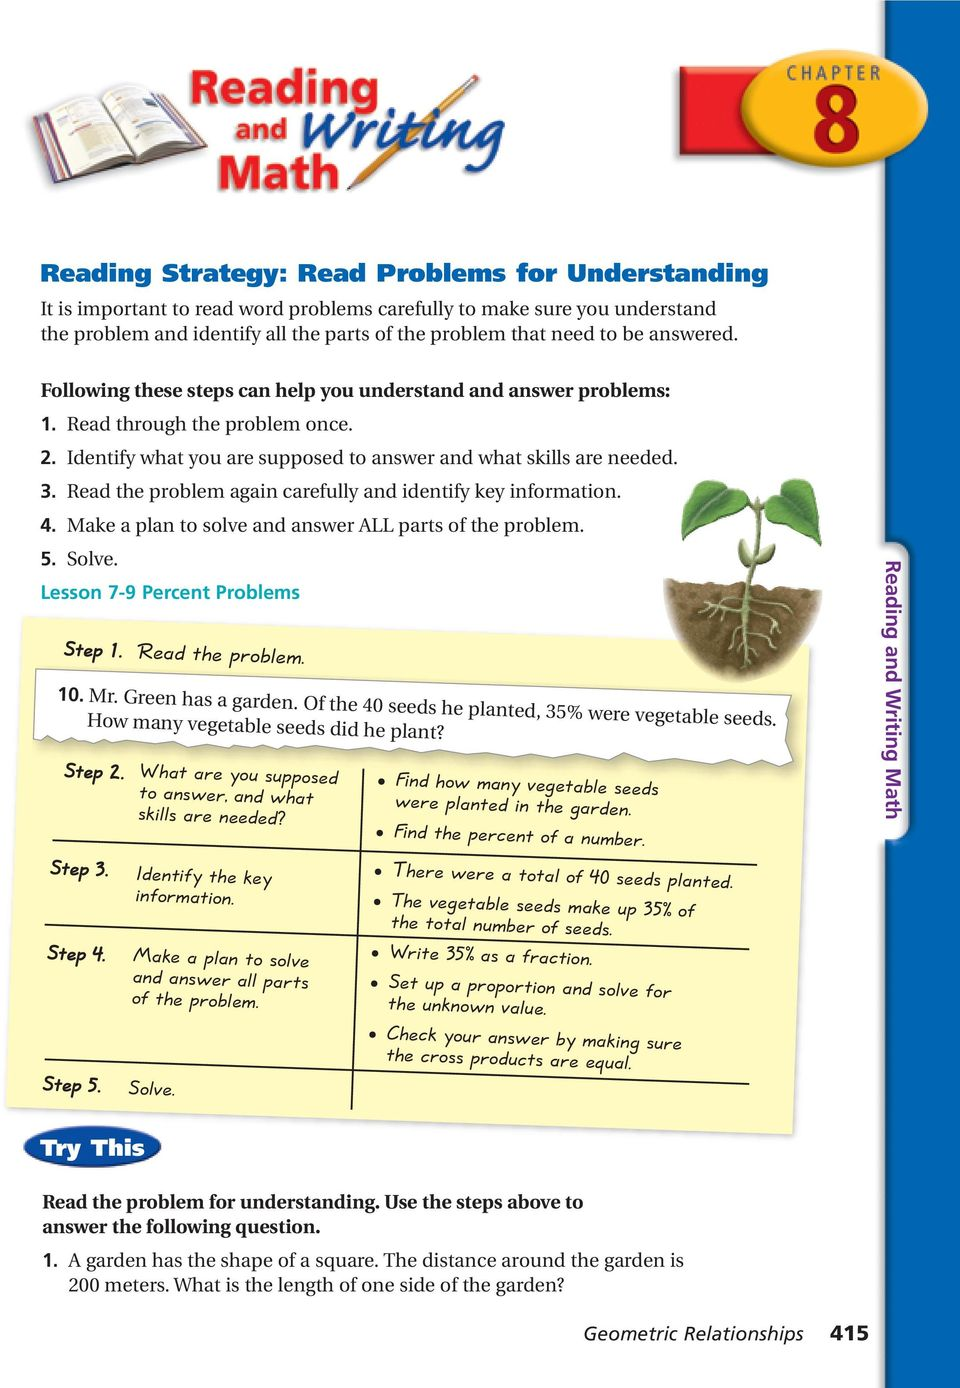 Read the problem again carefully and identify key information. 4. Make a plan to solve and answer LL parts of the problem. 5. Solve. Lesson 7-9 Percent Problems Step 1. Read the problem. 10. Mr.